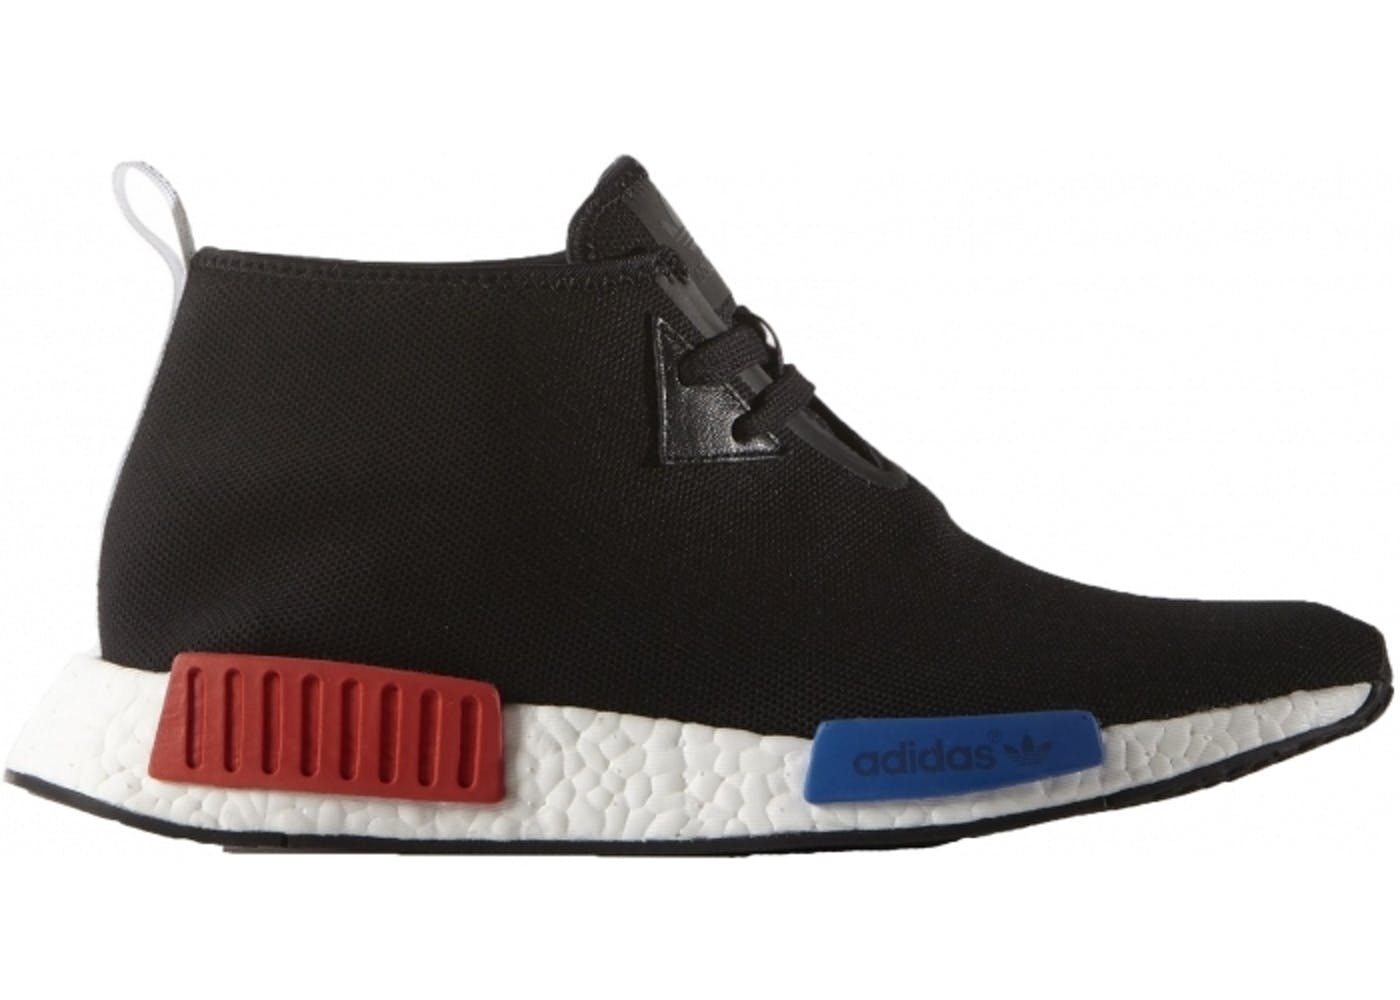 Restock Alert Adidas NMD C1 TR Chukka Trail S81834 Available Now